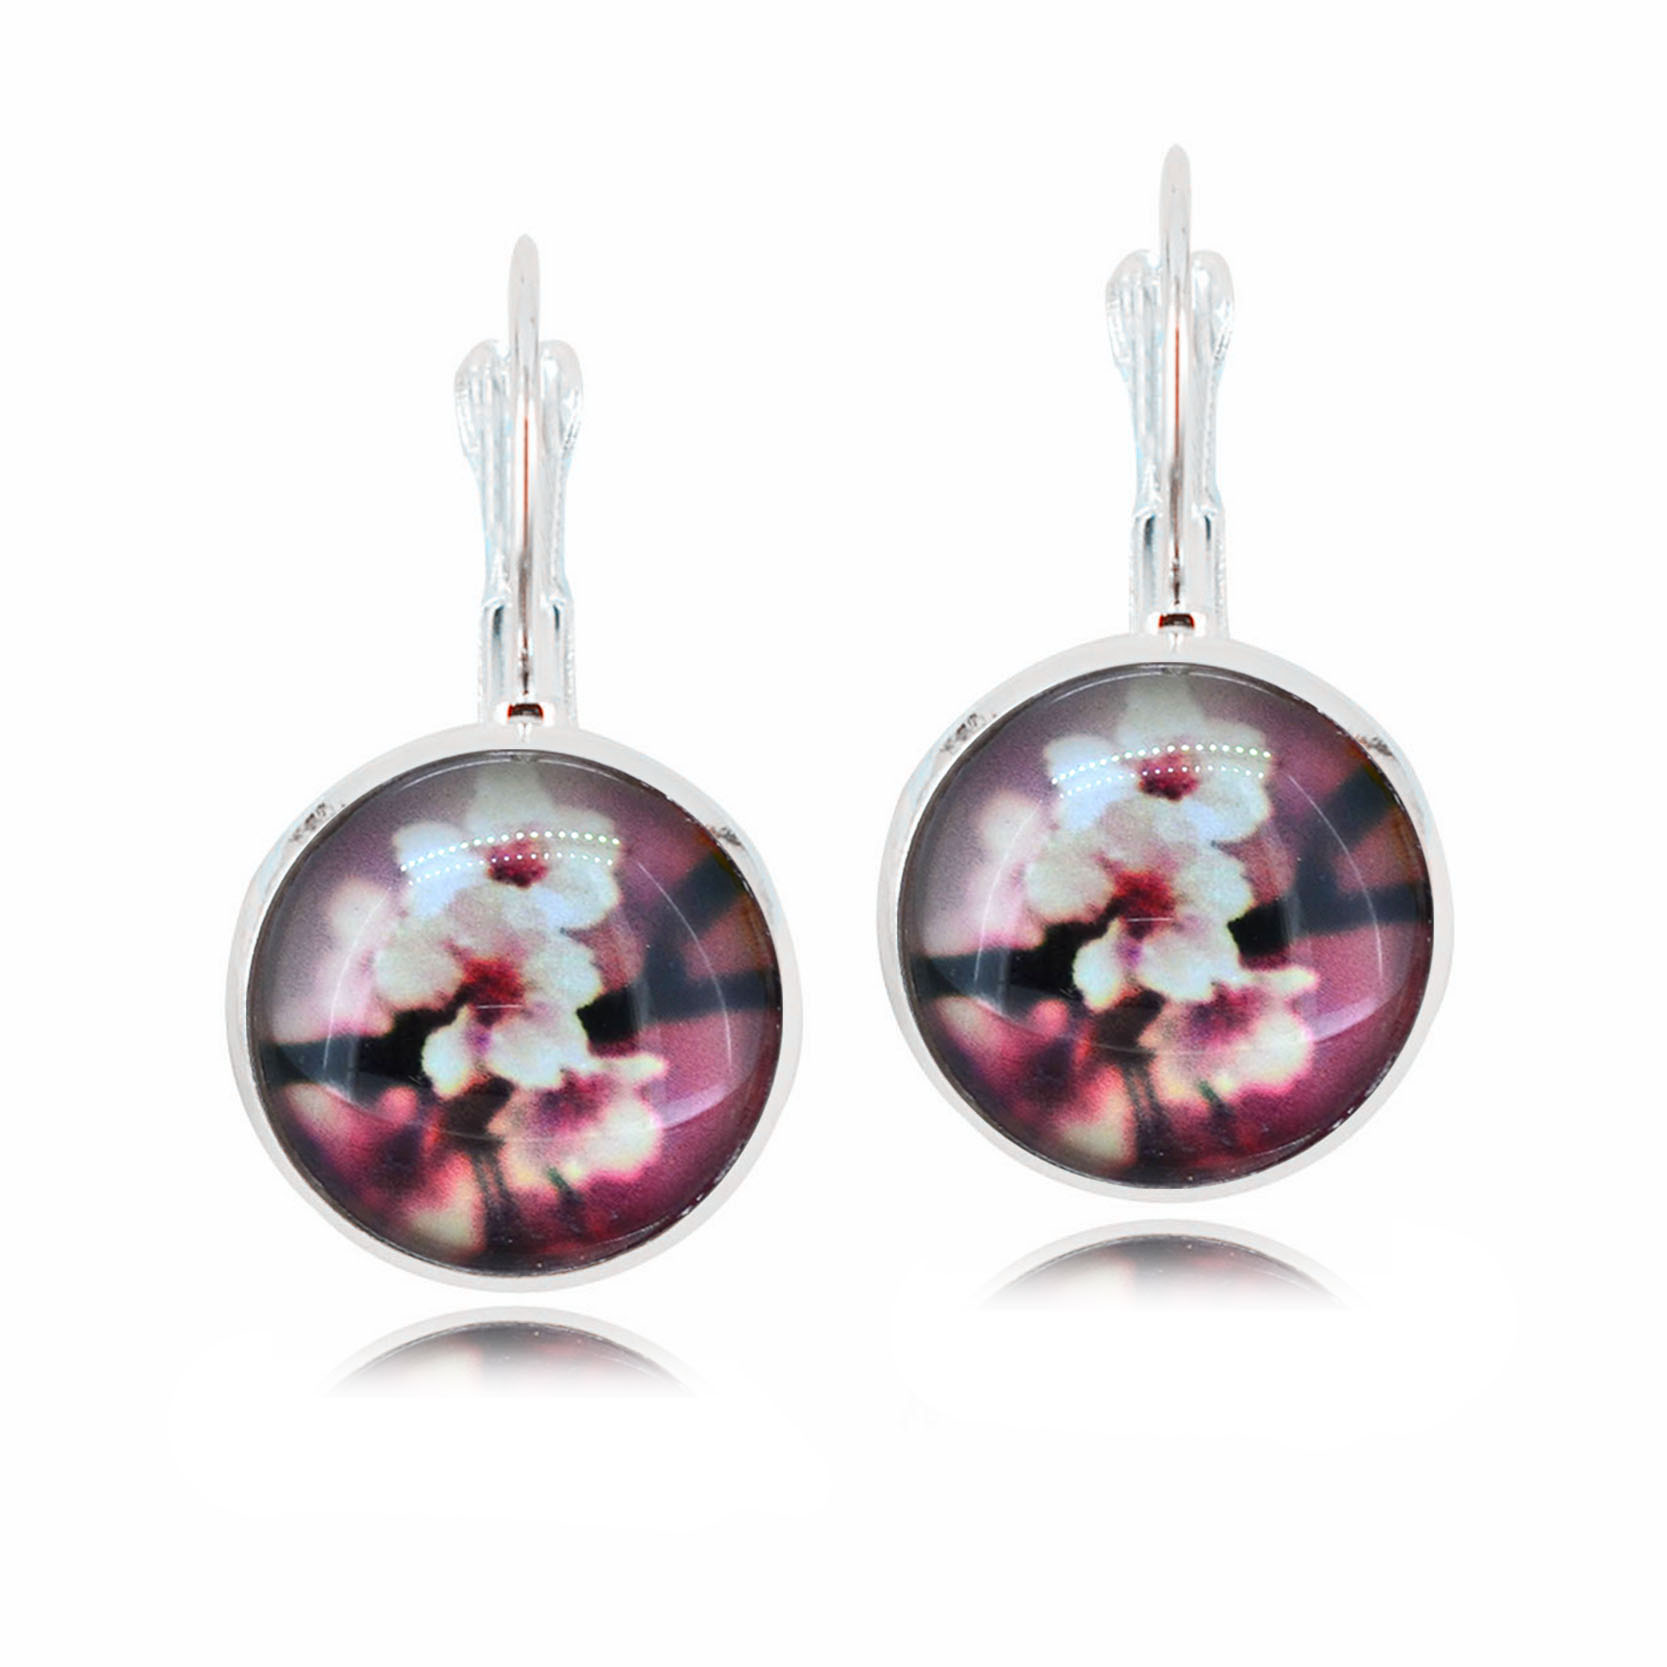 Plum Blossom Flowers Earring Silver Color French Lever Back Glass Cabochon  Copper Hoop Earrings For Women